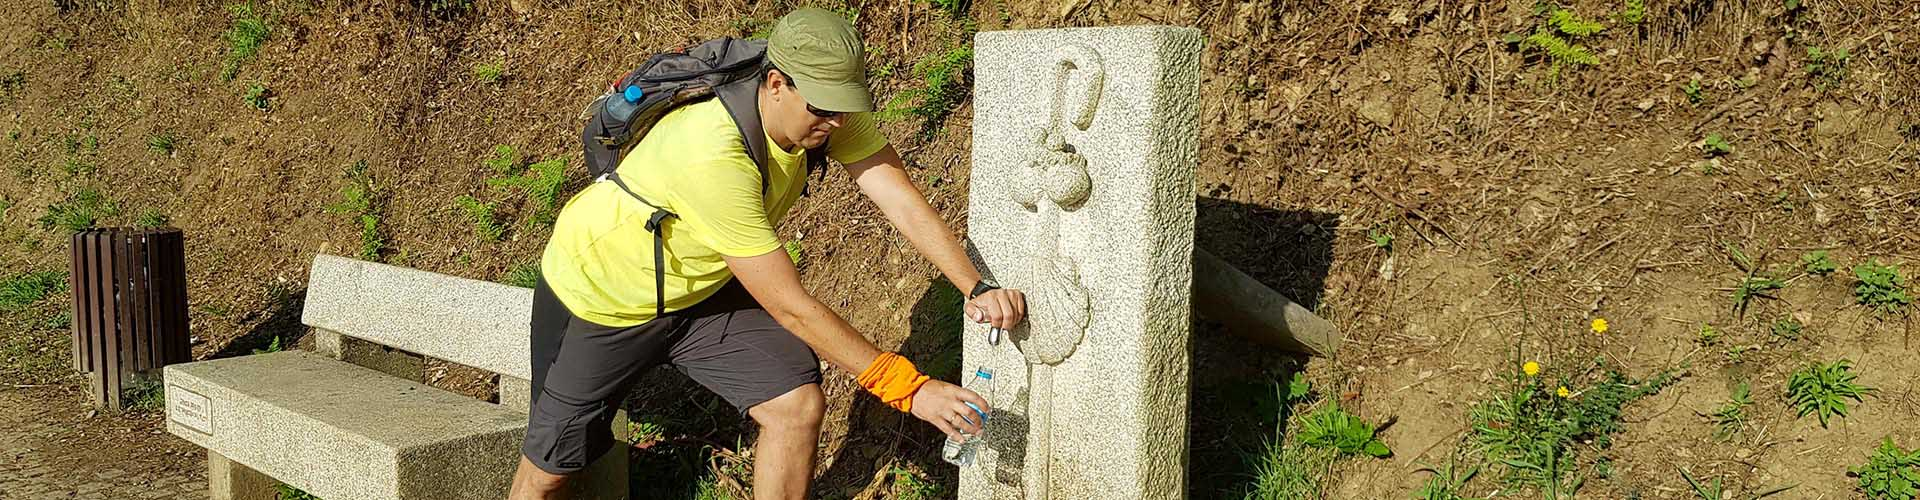 pilgrim refilling water on the way from Tui on the portuguese camino